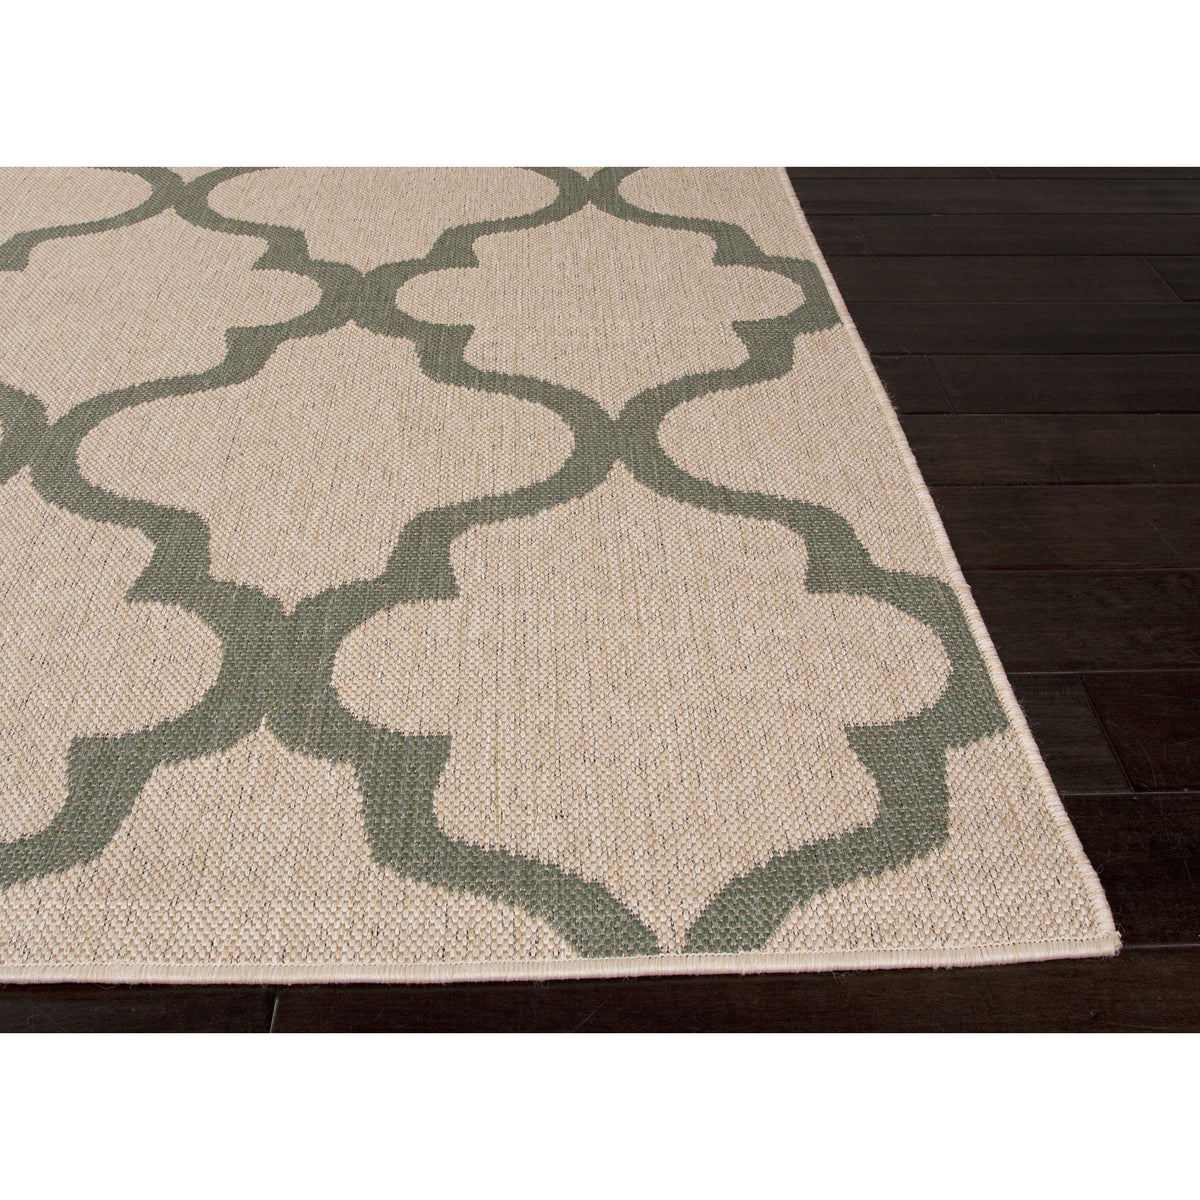 Jaipur Rugs IndoorOutdoor Moroccan Pattern Taupe/Blue